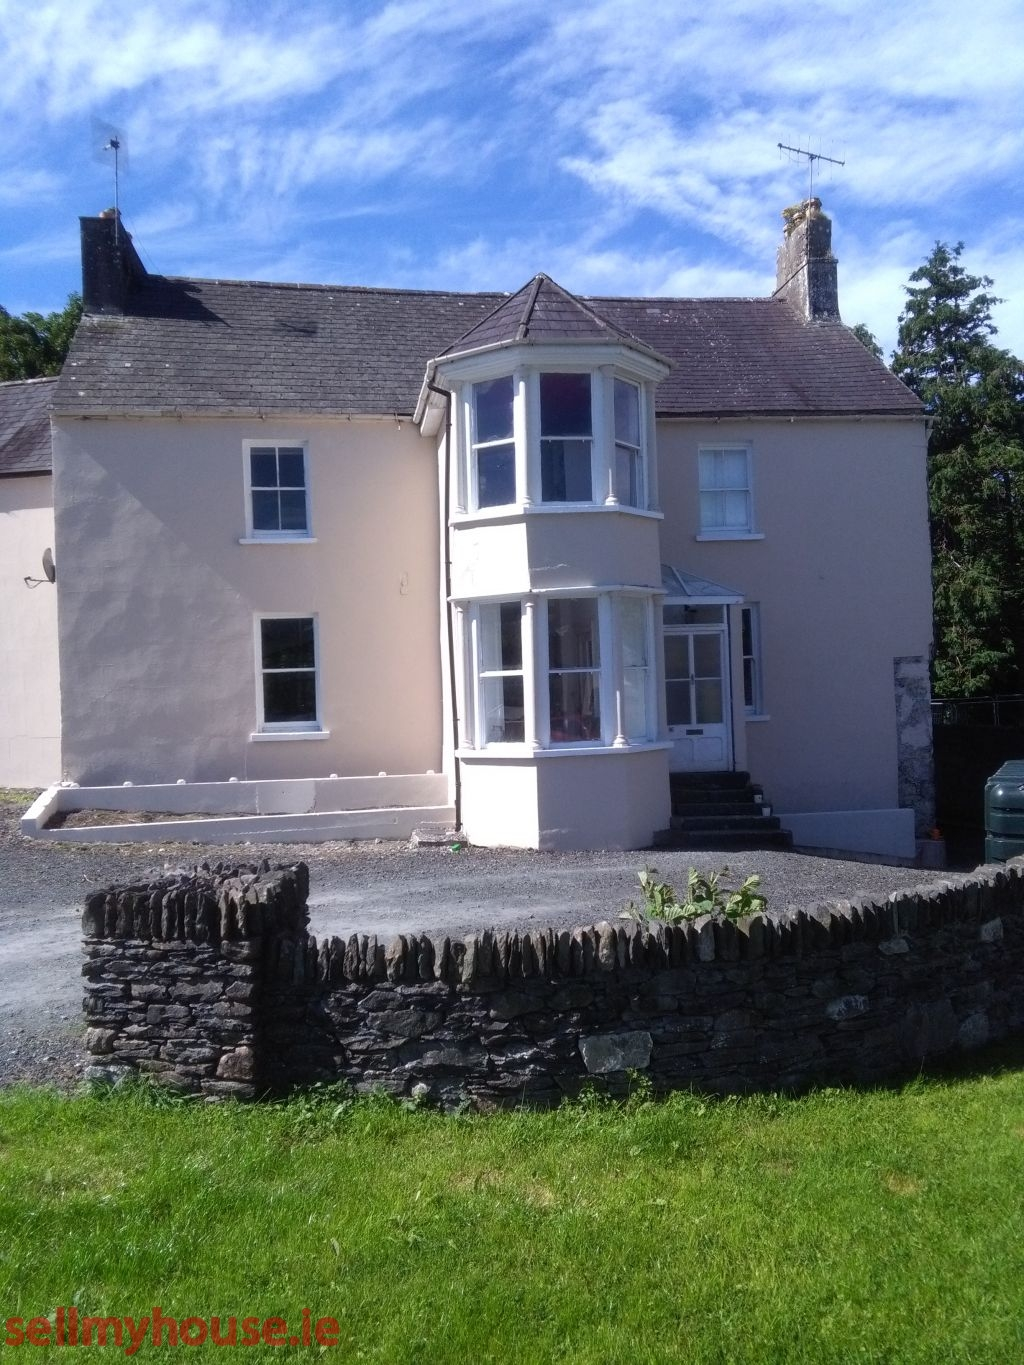 retreats from nearby holiday with or beach ireland cottages rural for in sea view coastal sale